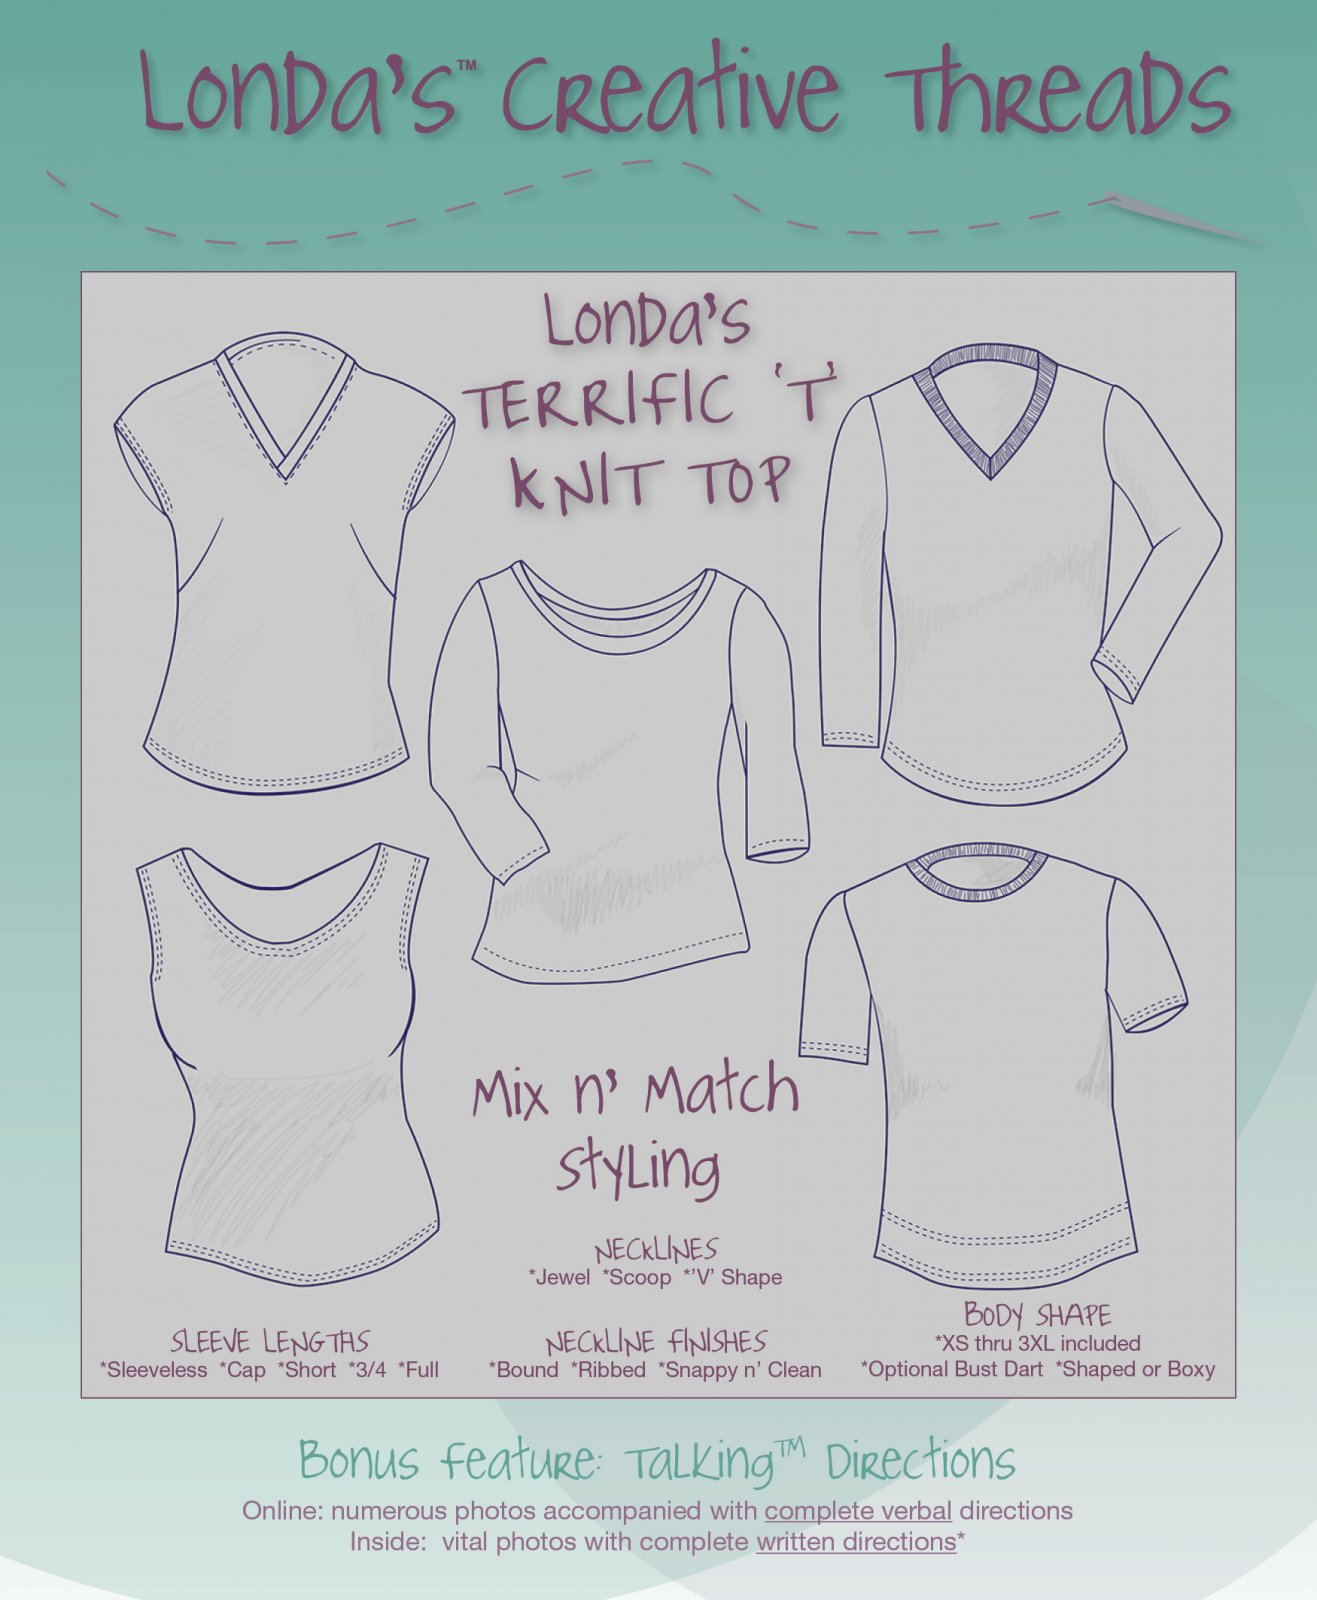 Londa's Terrific 'T' Knit Top Talking Pattern Booklet - Printed